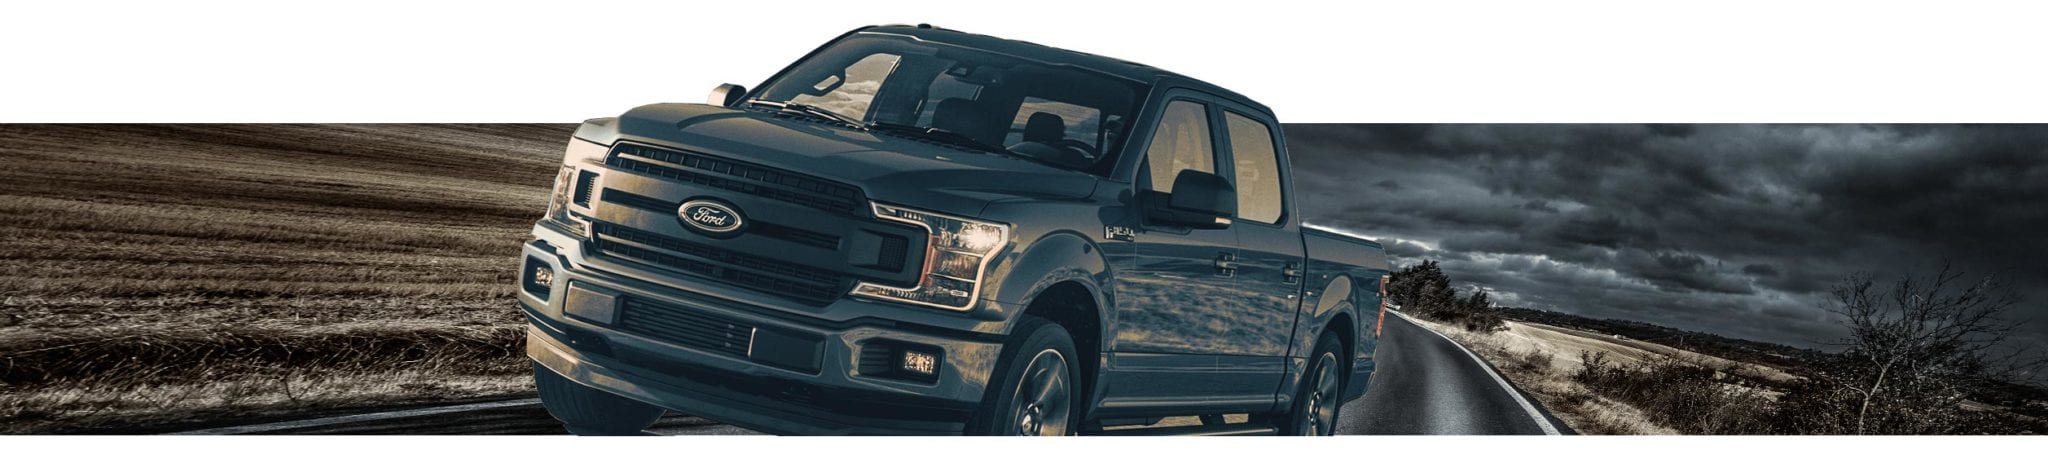 Ford's Power Stroke® Turbo Diesel Engine, Coming Soon to Team Ford